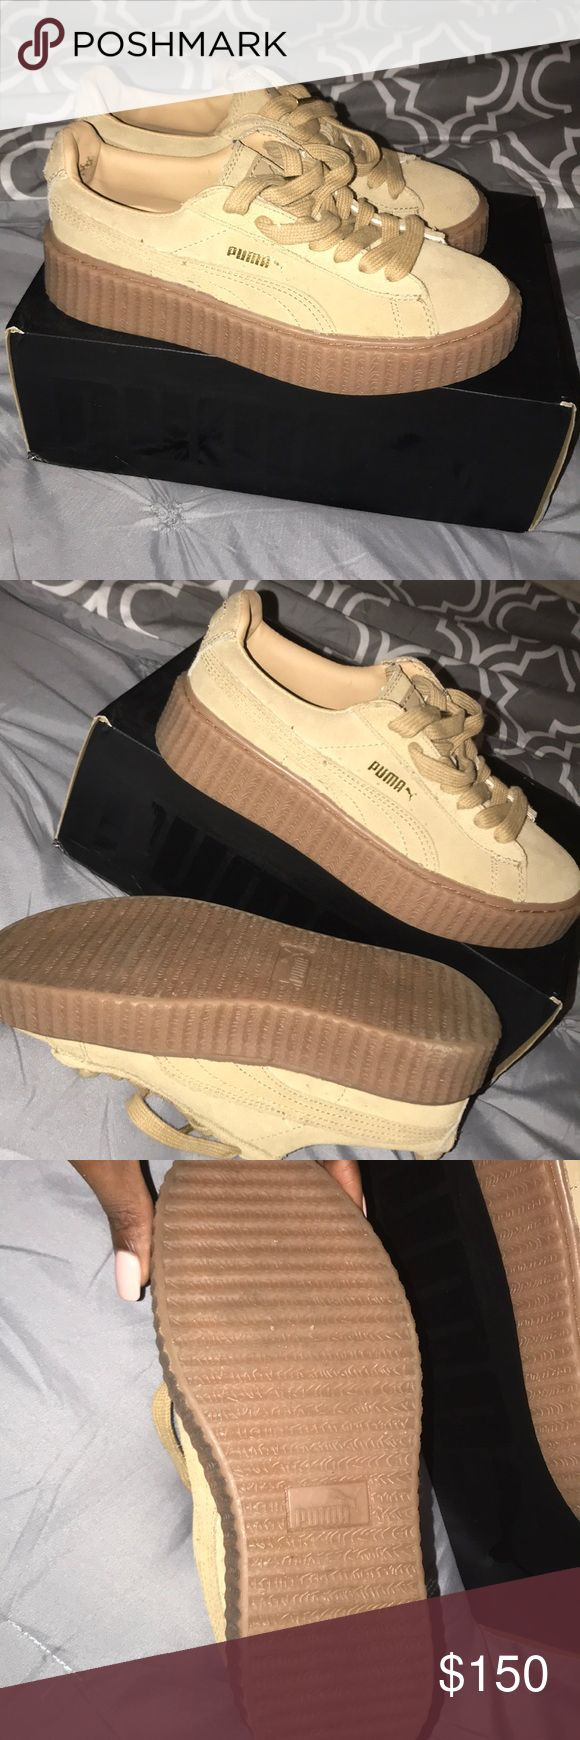 Fenty platform Puma Leather bottom tan suede shoe worn only once still basically new no scratches or bends in shoes very comfortable just own to many tan suede shoes they need a good home Puma Shoes Athletic Shoes